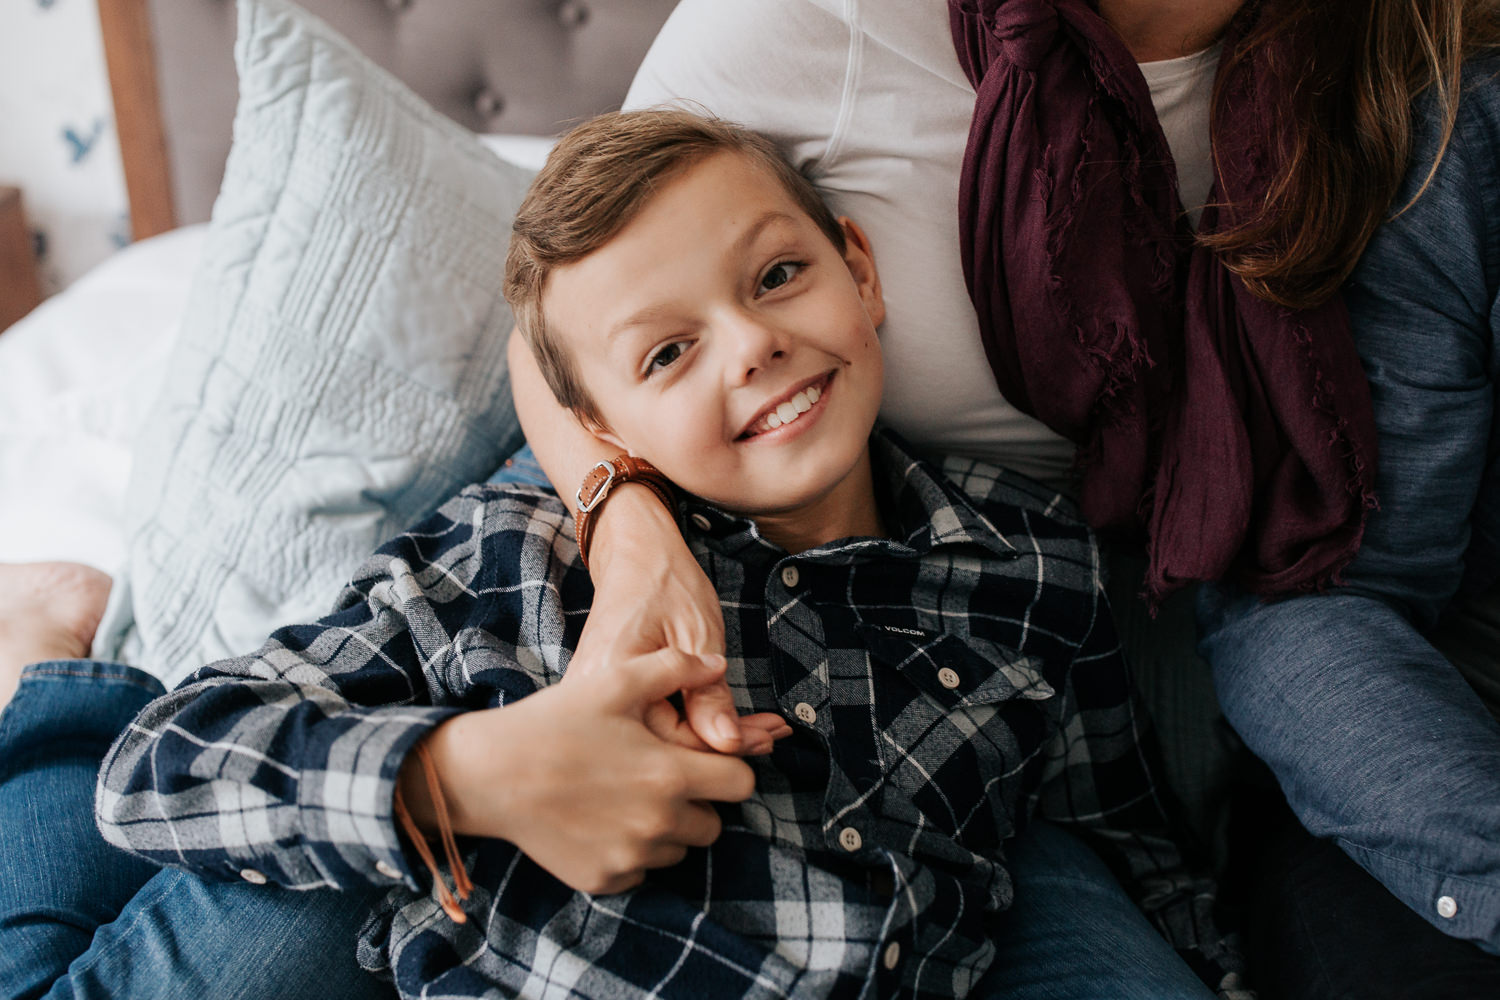 9 year old boy lying in mom's lap as they sit on bed, looking up and smiling at camera - Stouffville Lifestyle Photography